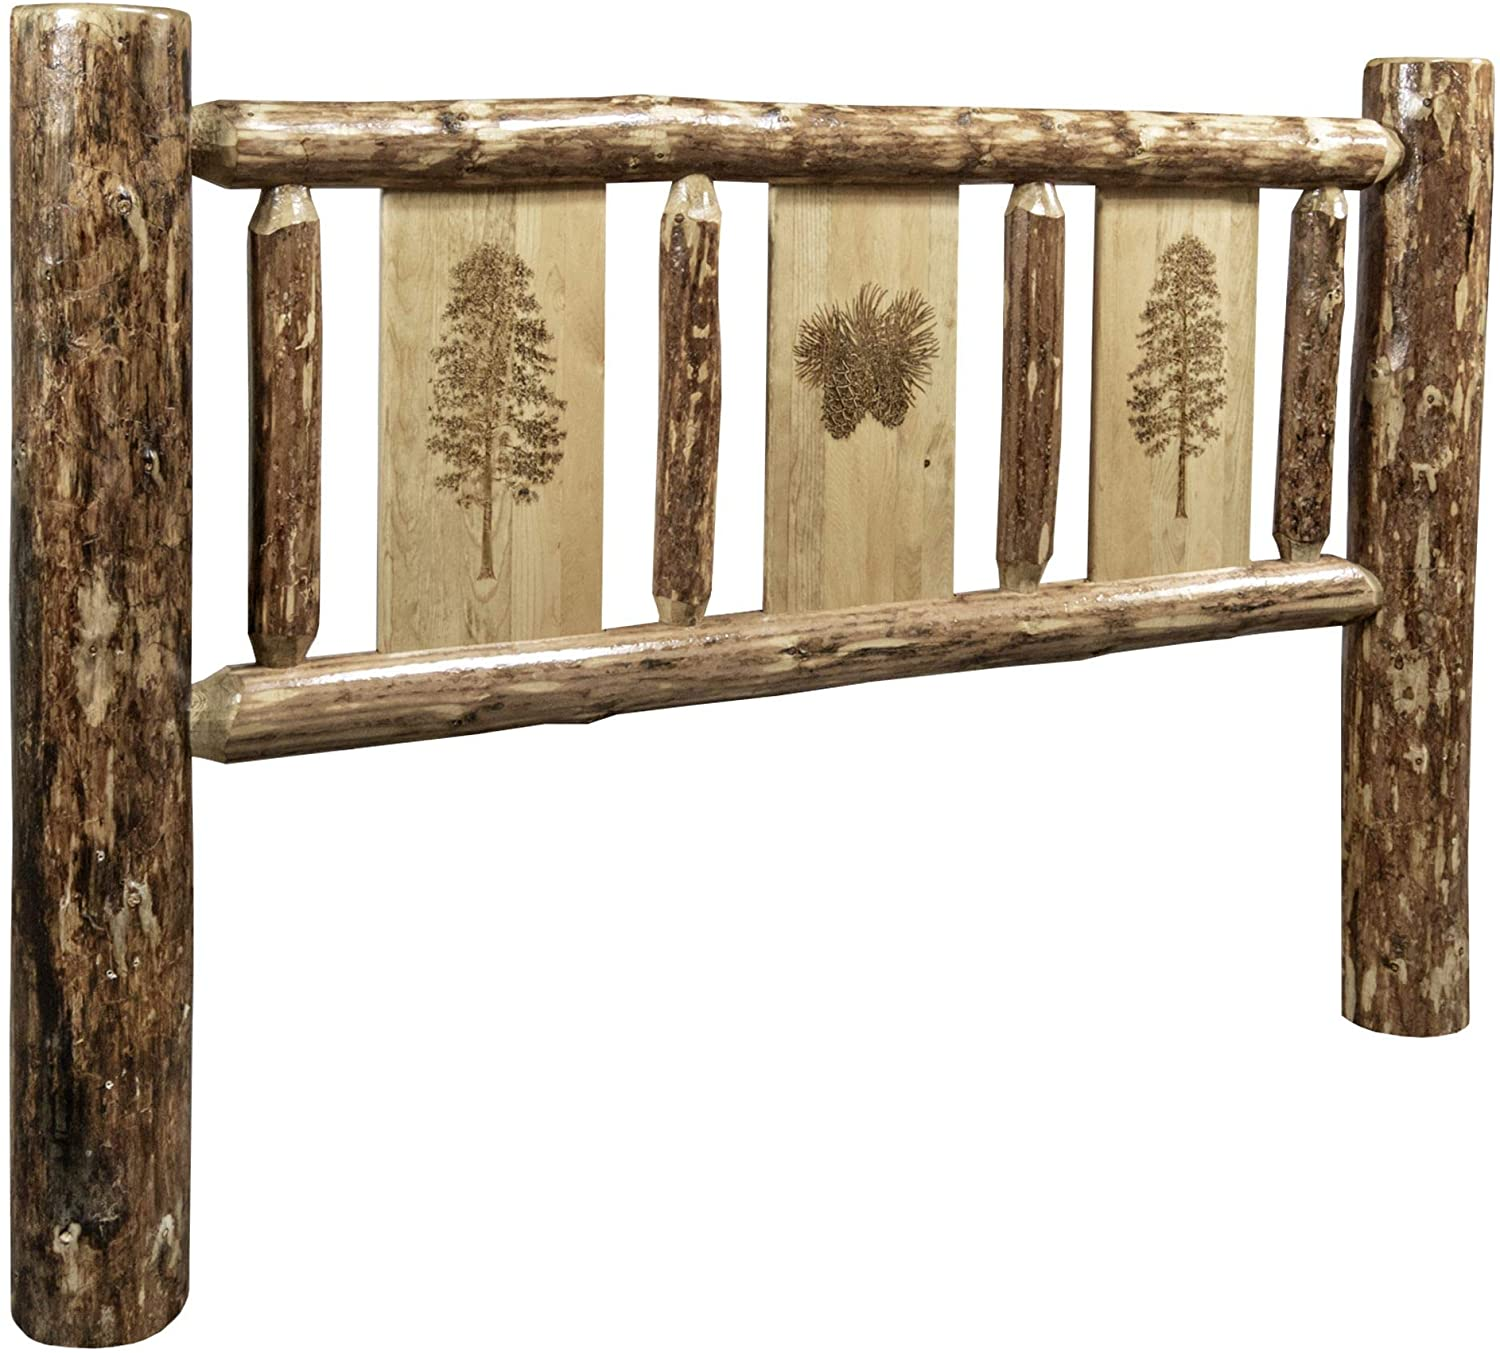 Montana Woodworks Glacier Country Collection King Headboard w/Laser Engraved Pine Design